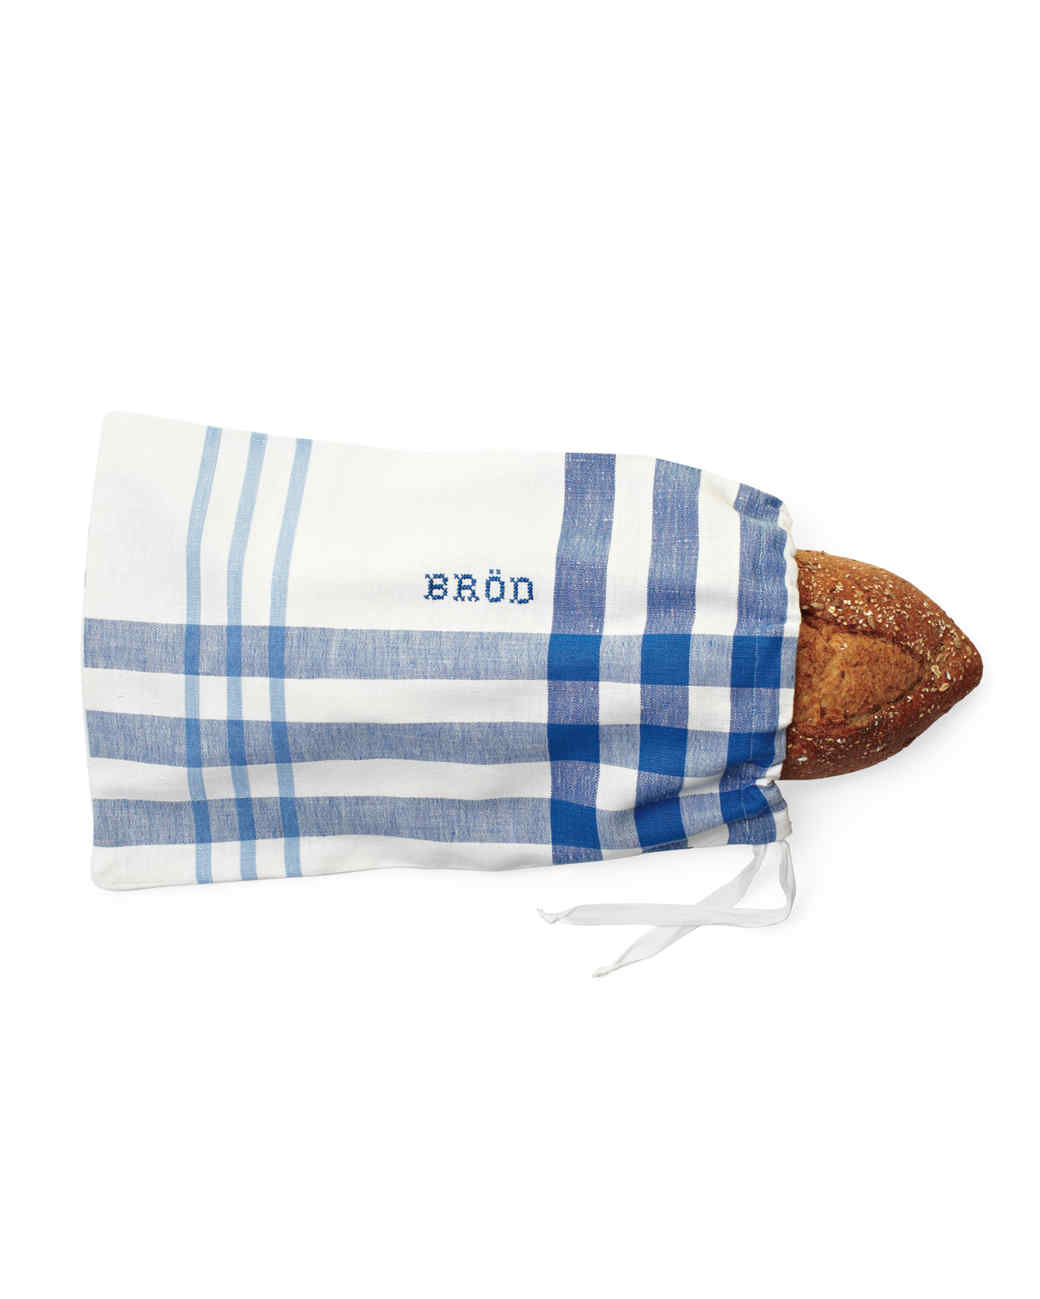 farmor-bread-bag-mld108683.jpg